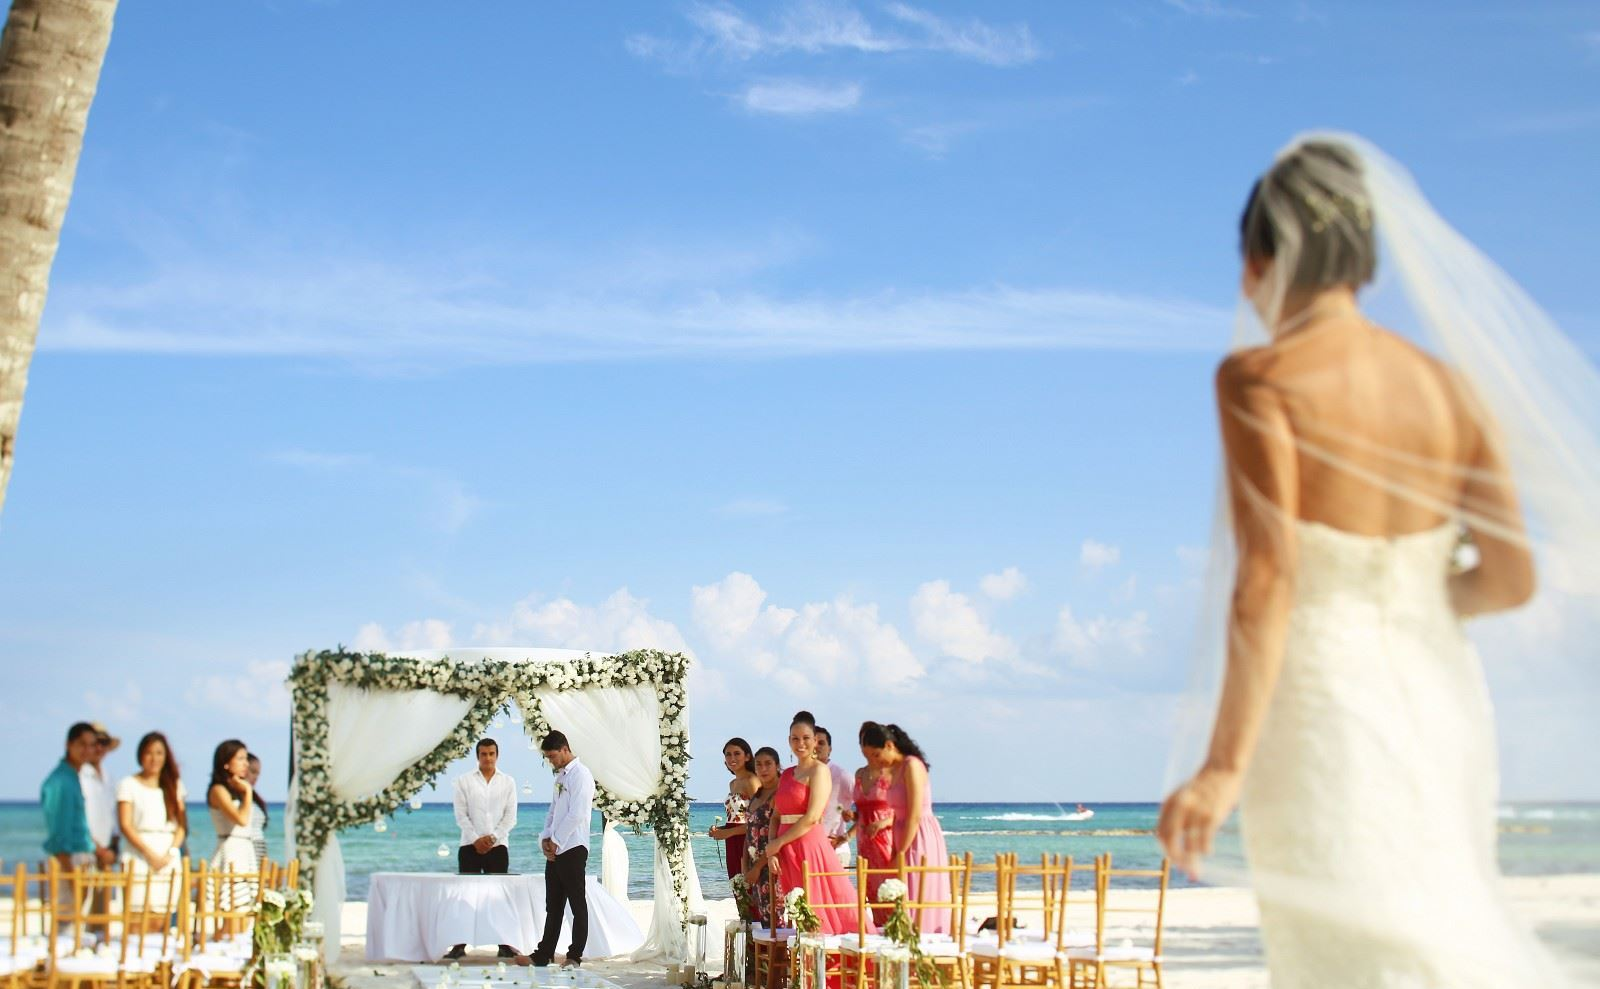 Your Average Cost Of An All Inclusive Wedding In Mexico In 2017